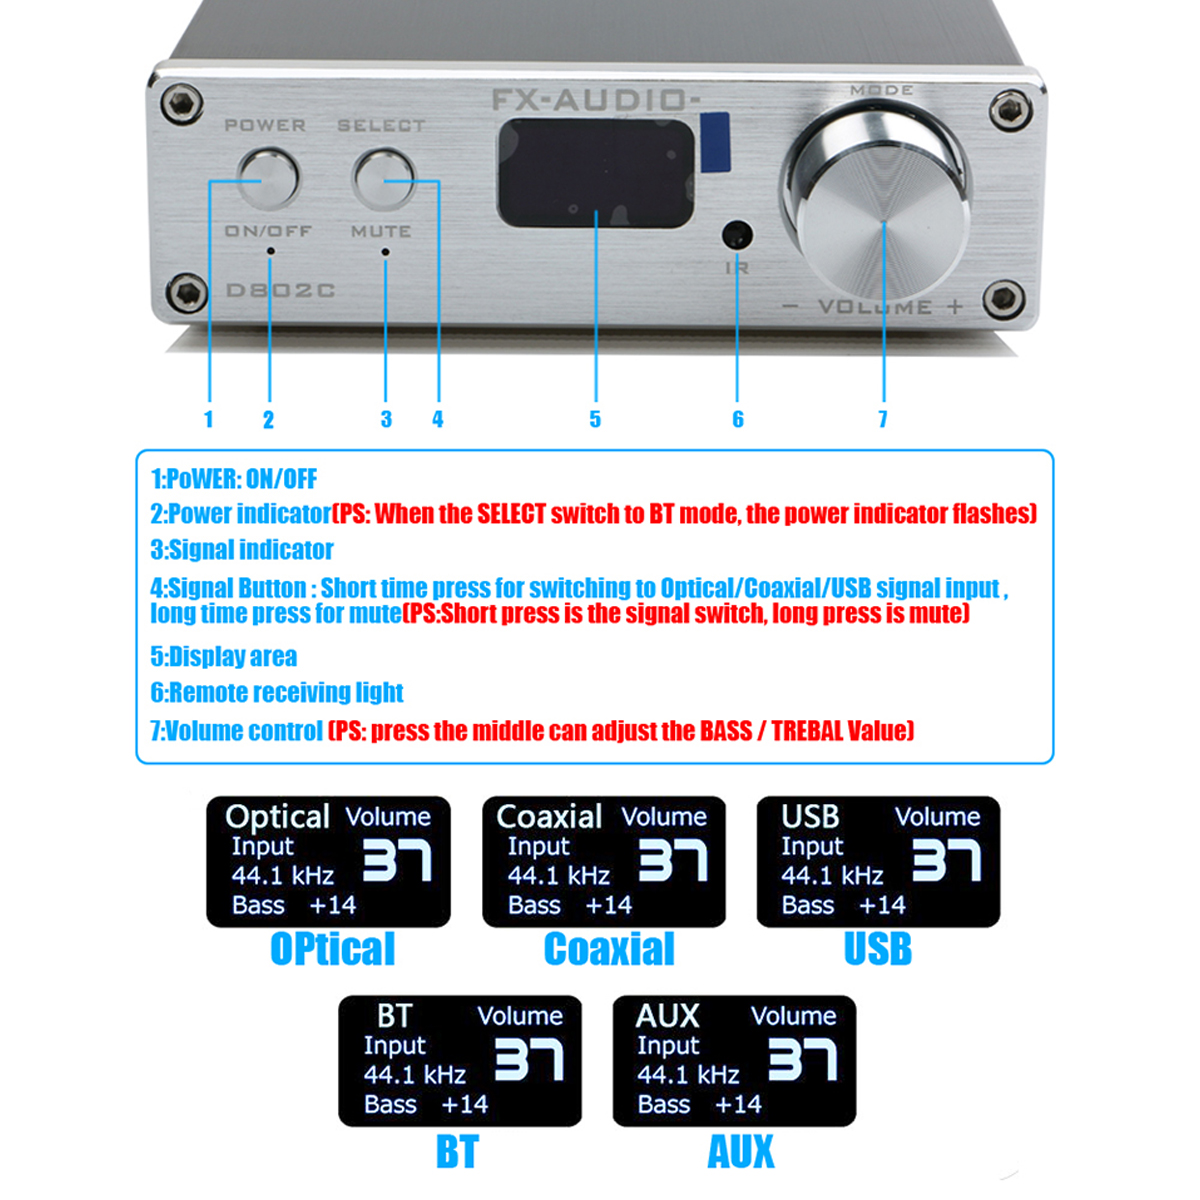 FX-Audio D802C Full Digital Audio Bluetooth Amplifier Input USB/RCA/Optical/Coaxial Input 24Bit/192KHz 80W*2 + EU Power Adapter